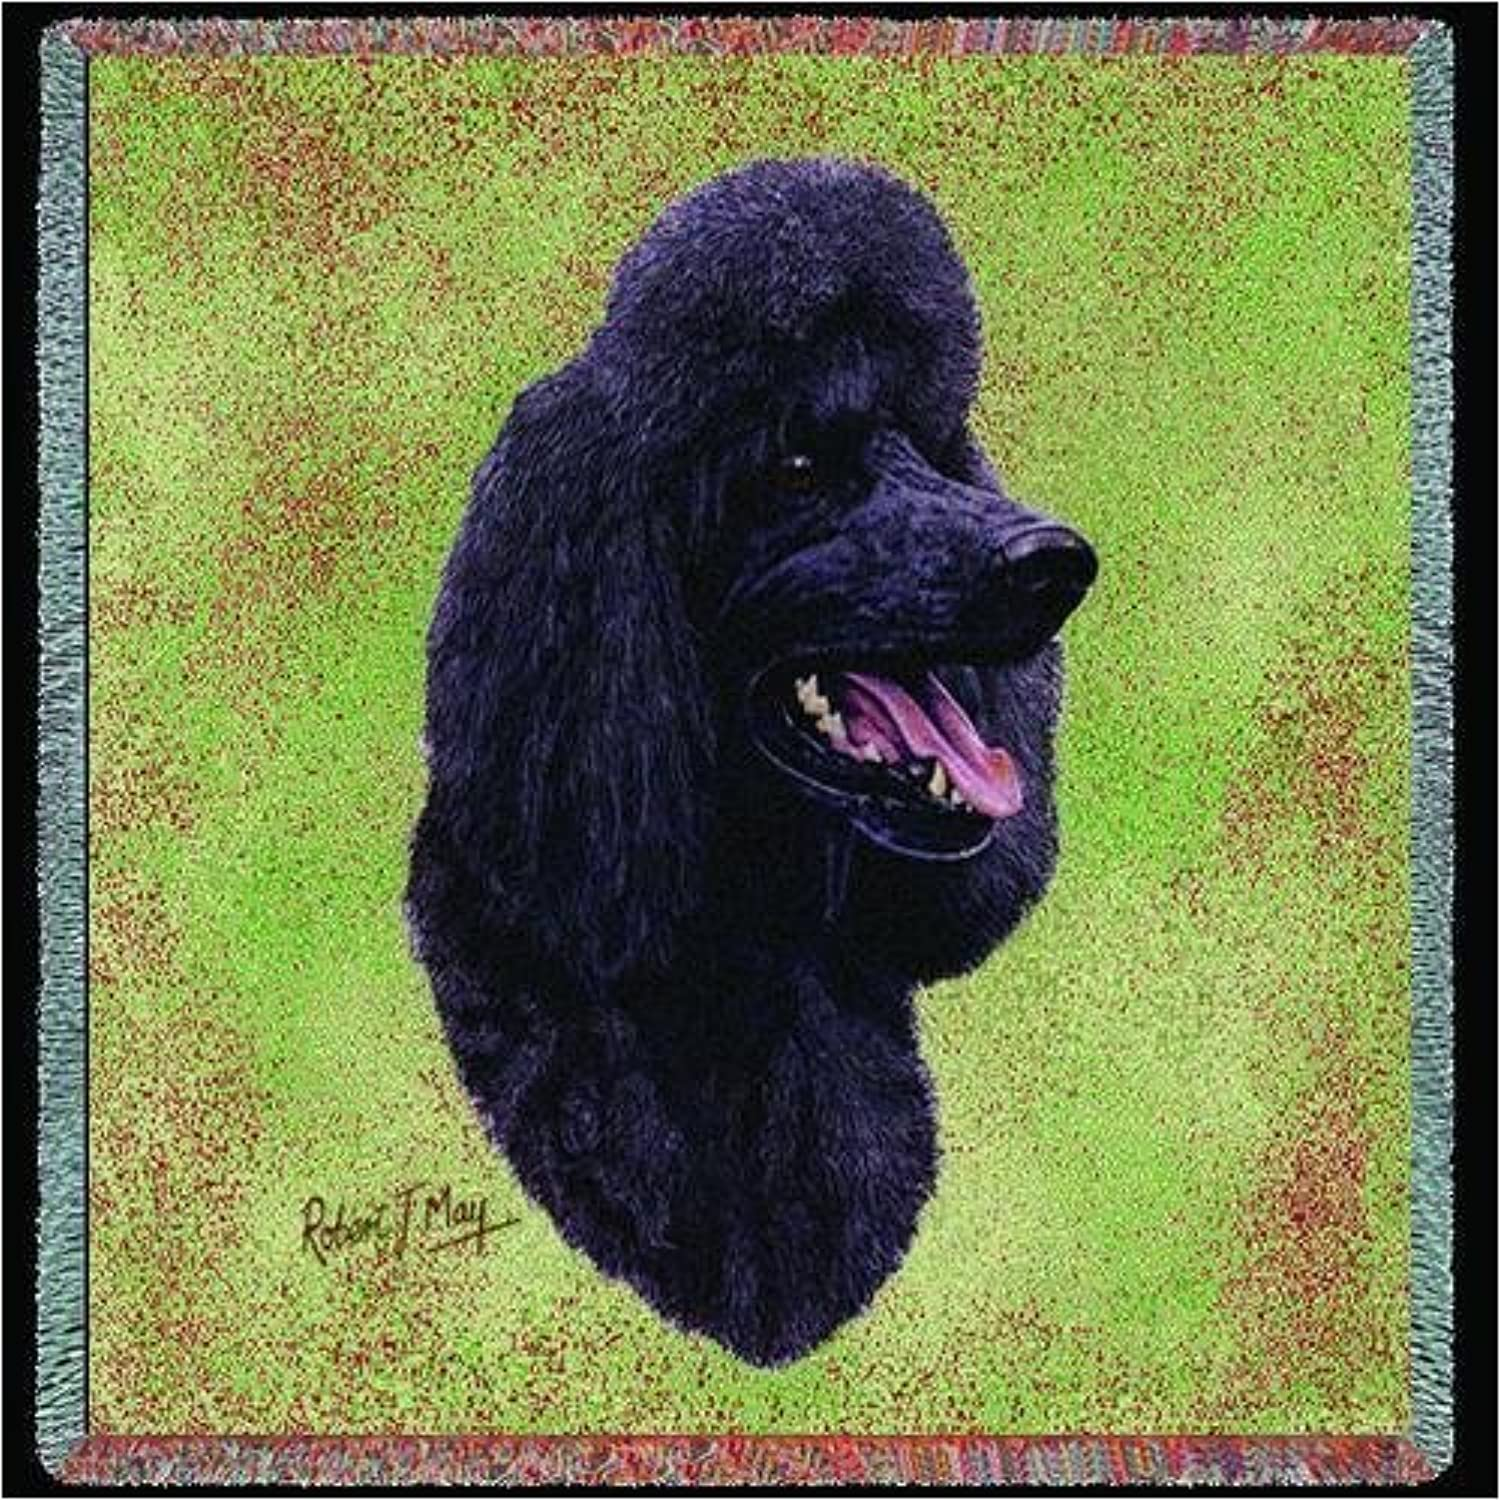 Pure Country 3312LS Black Poodle Pet Blanket, Canine on Beige Background, 54 by 54Inch by Pure Country